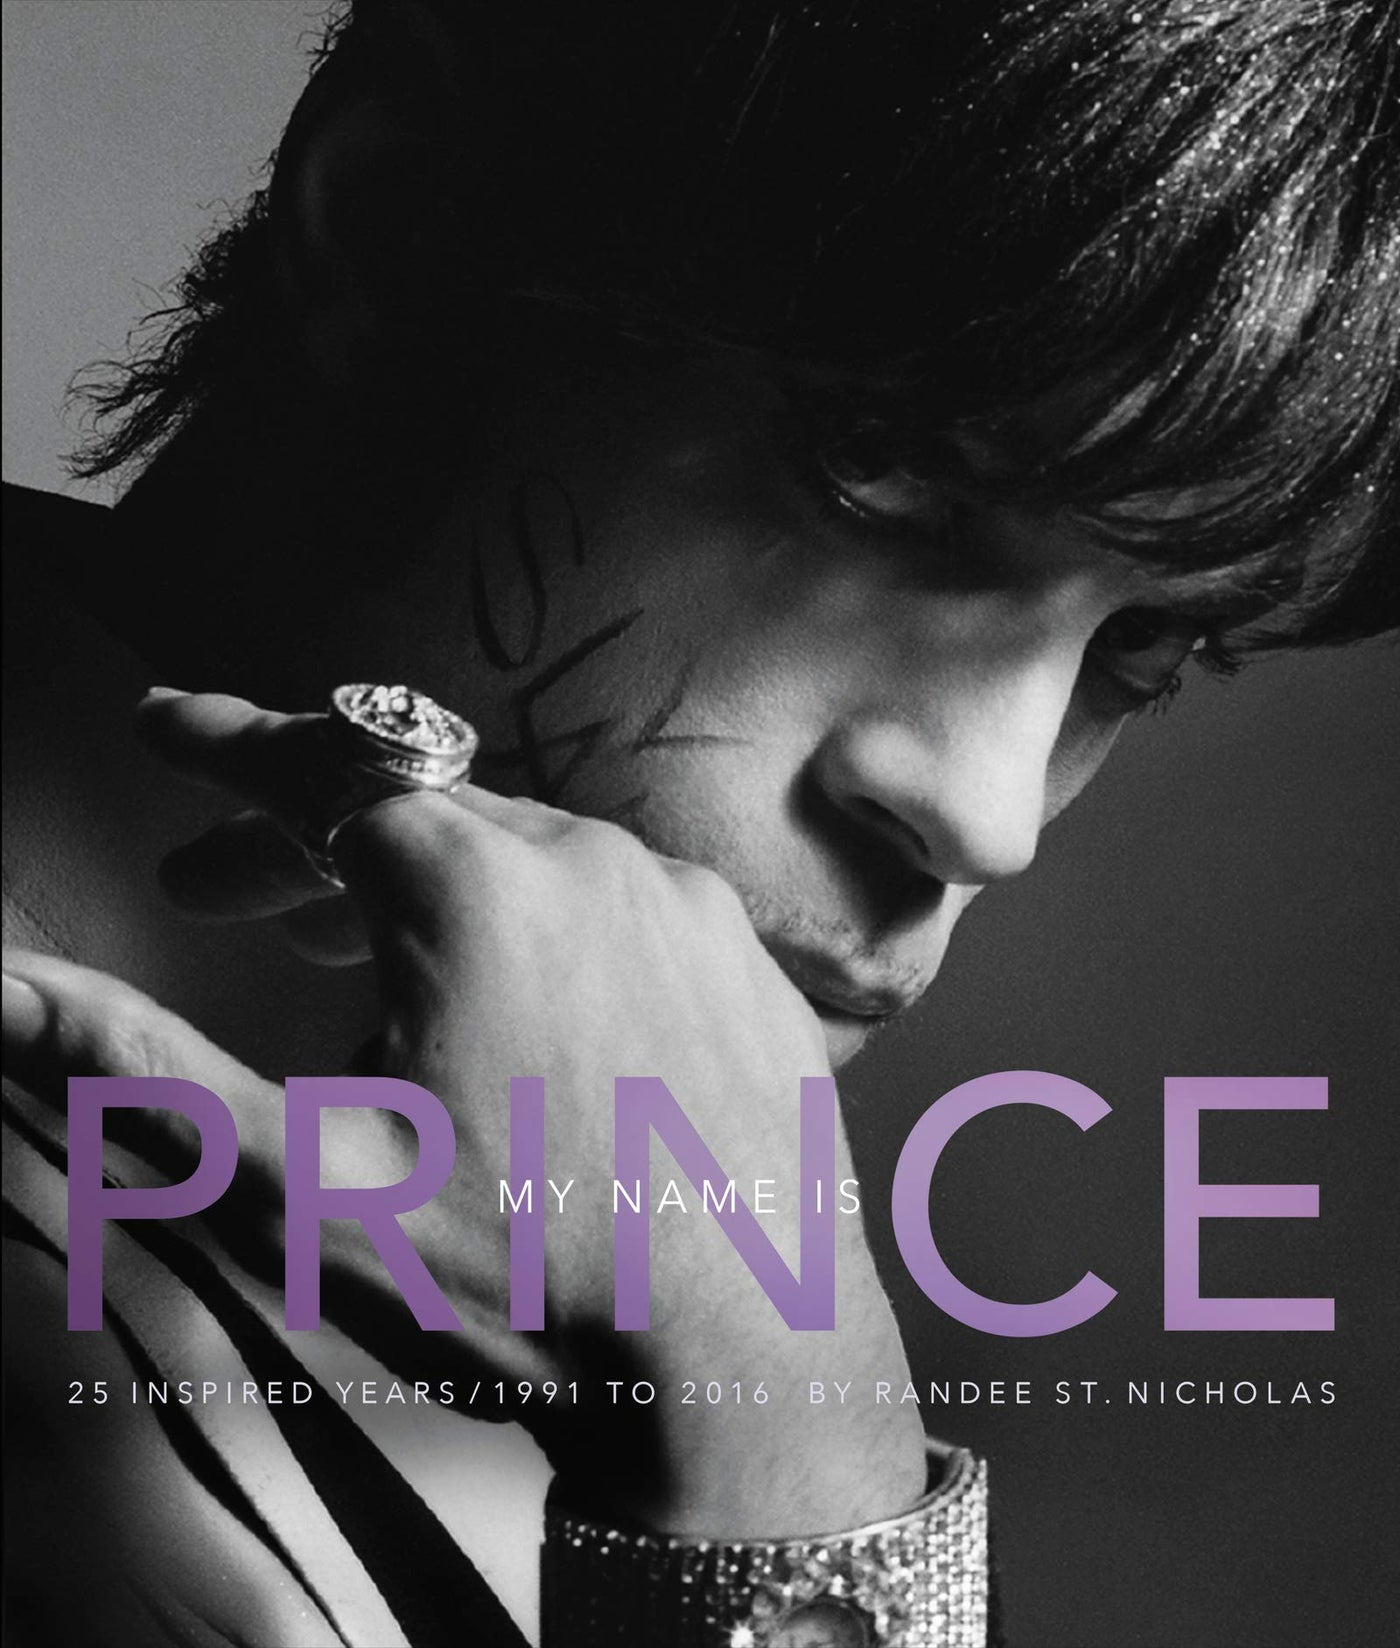 My Name Is Prince by Randee St. Nicholas